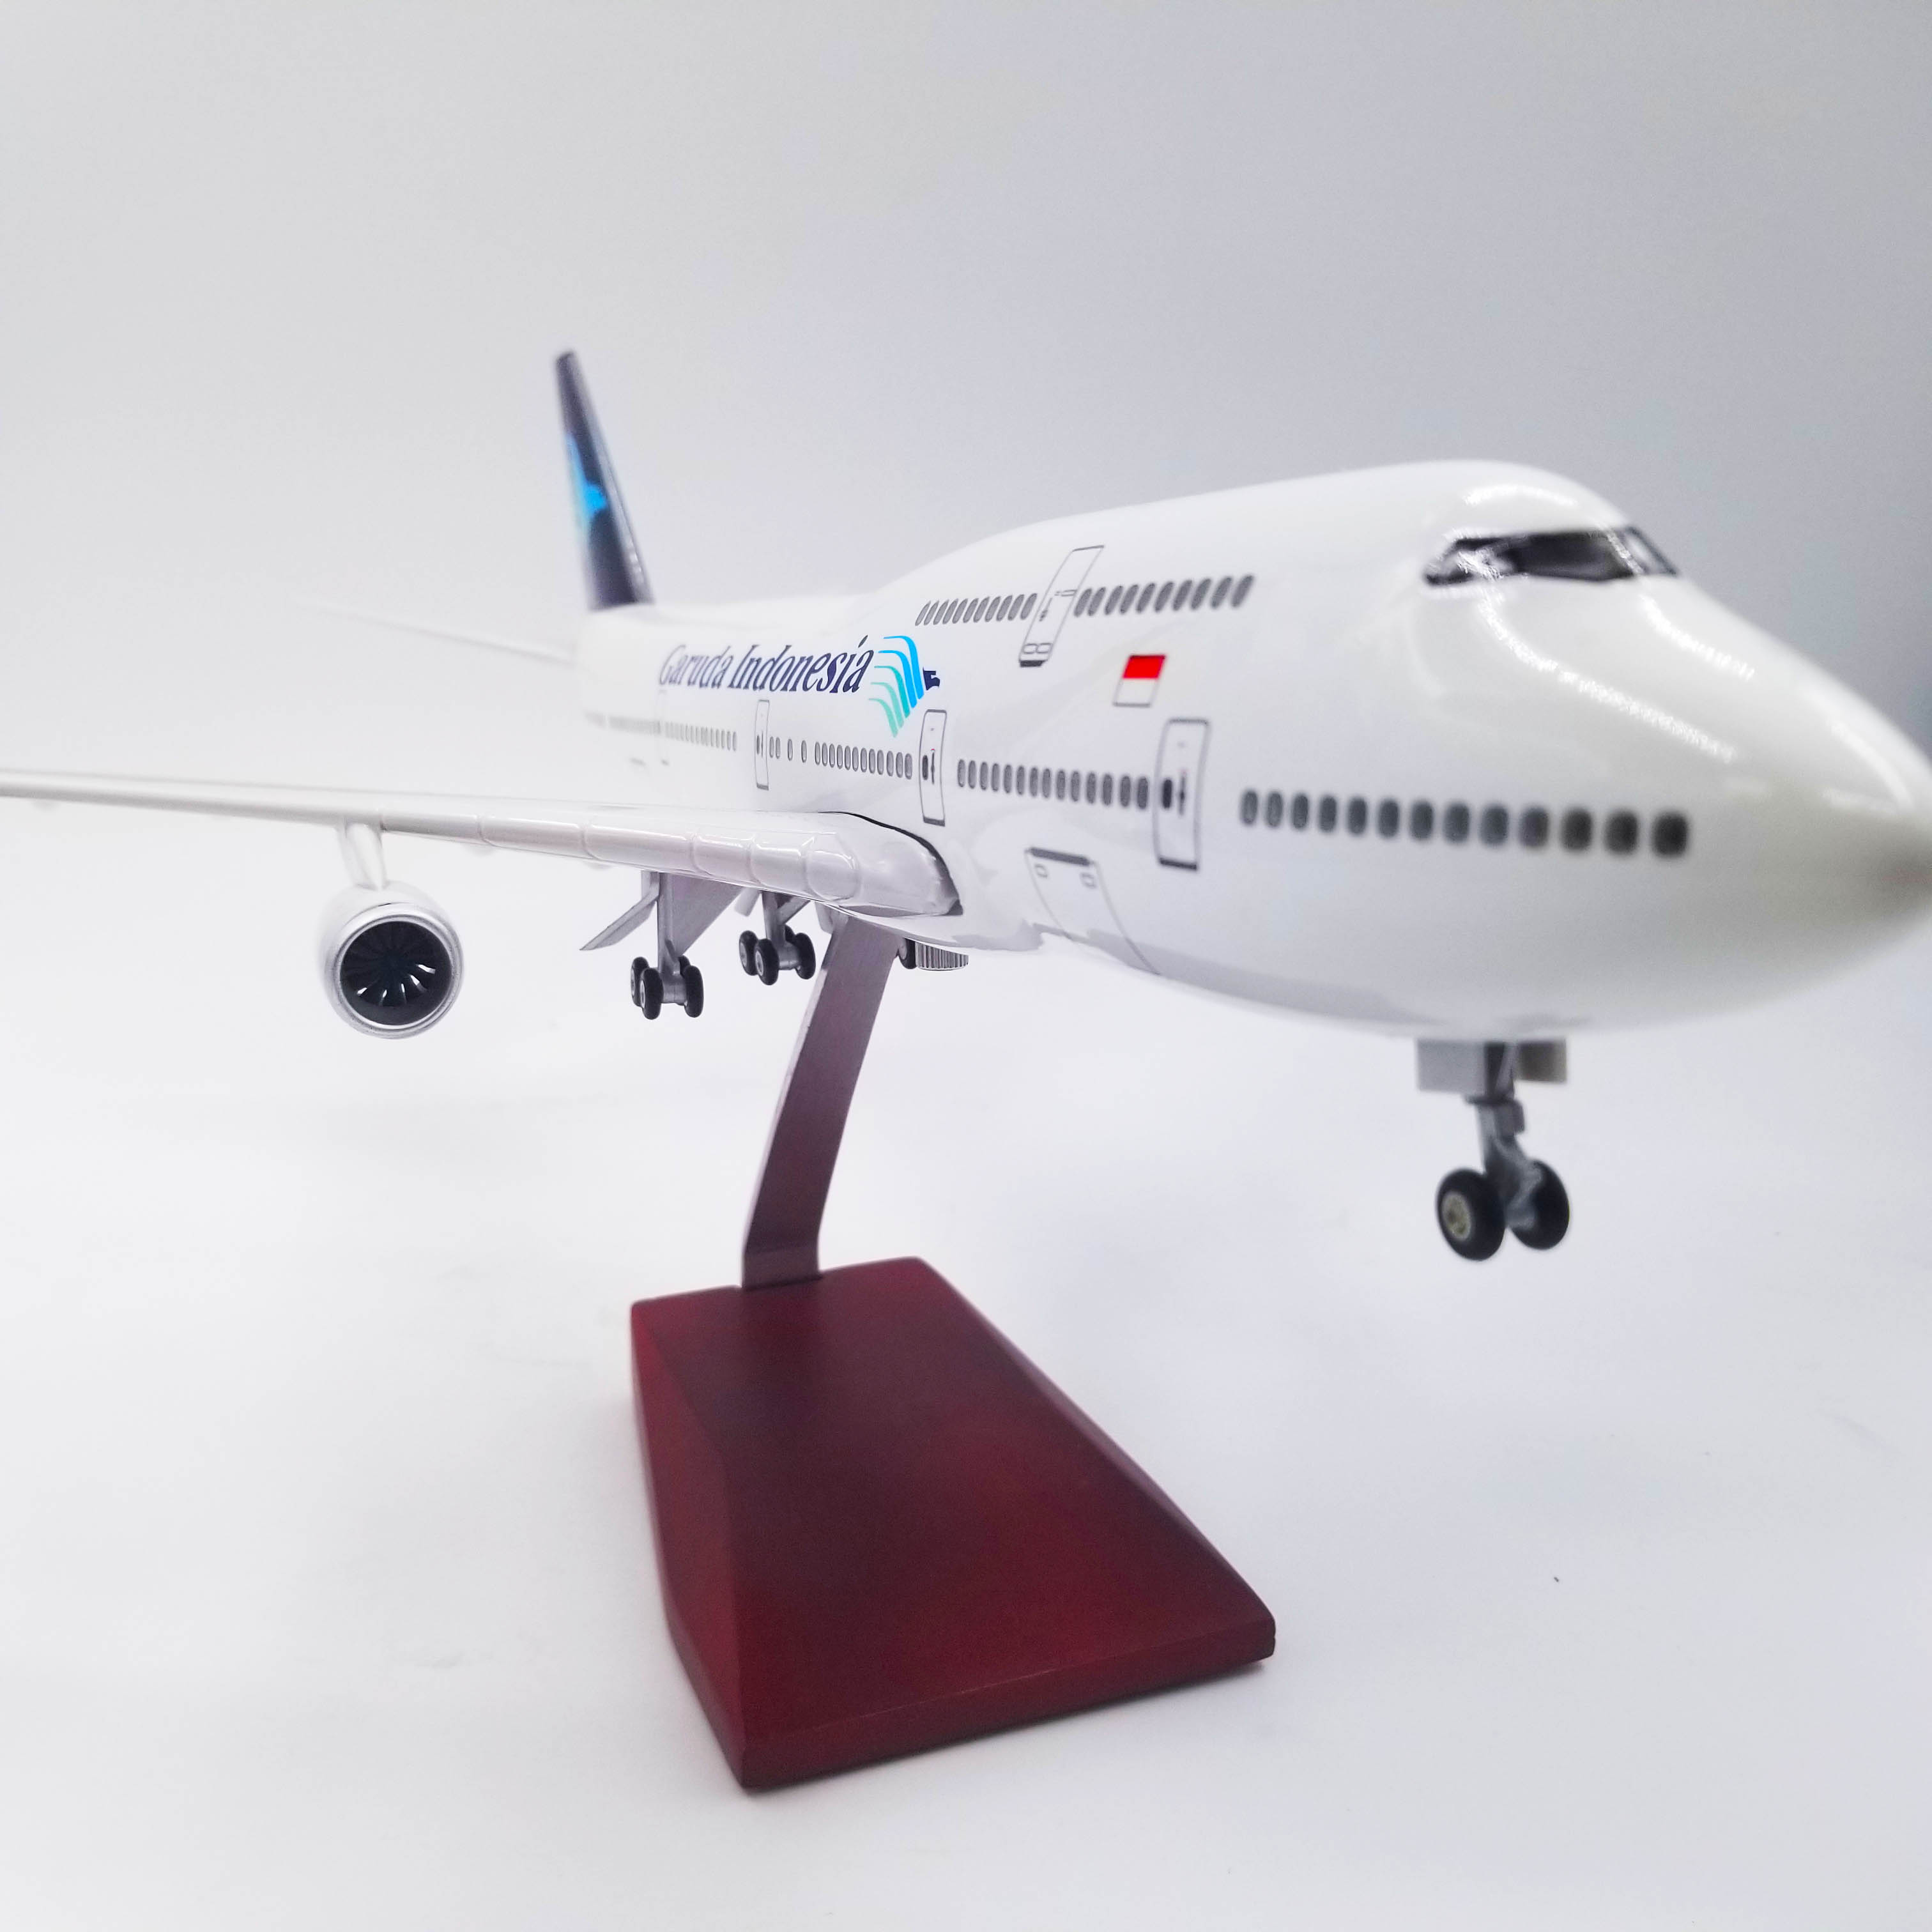 1 150 Scale 47CM Airplane Boeing B747 with Light and Wheels Garuda Indonesia Model Toys Aircraft Model Resin Plastic Alloy Plane in Diecasts Toy Vehicles from Toys Hobbies